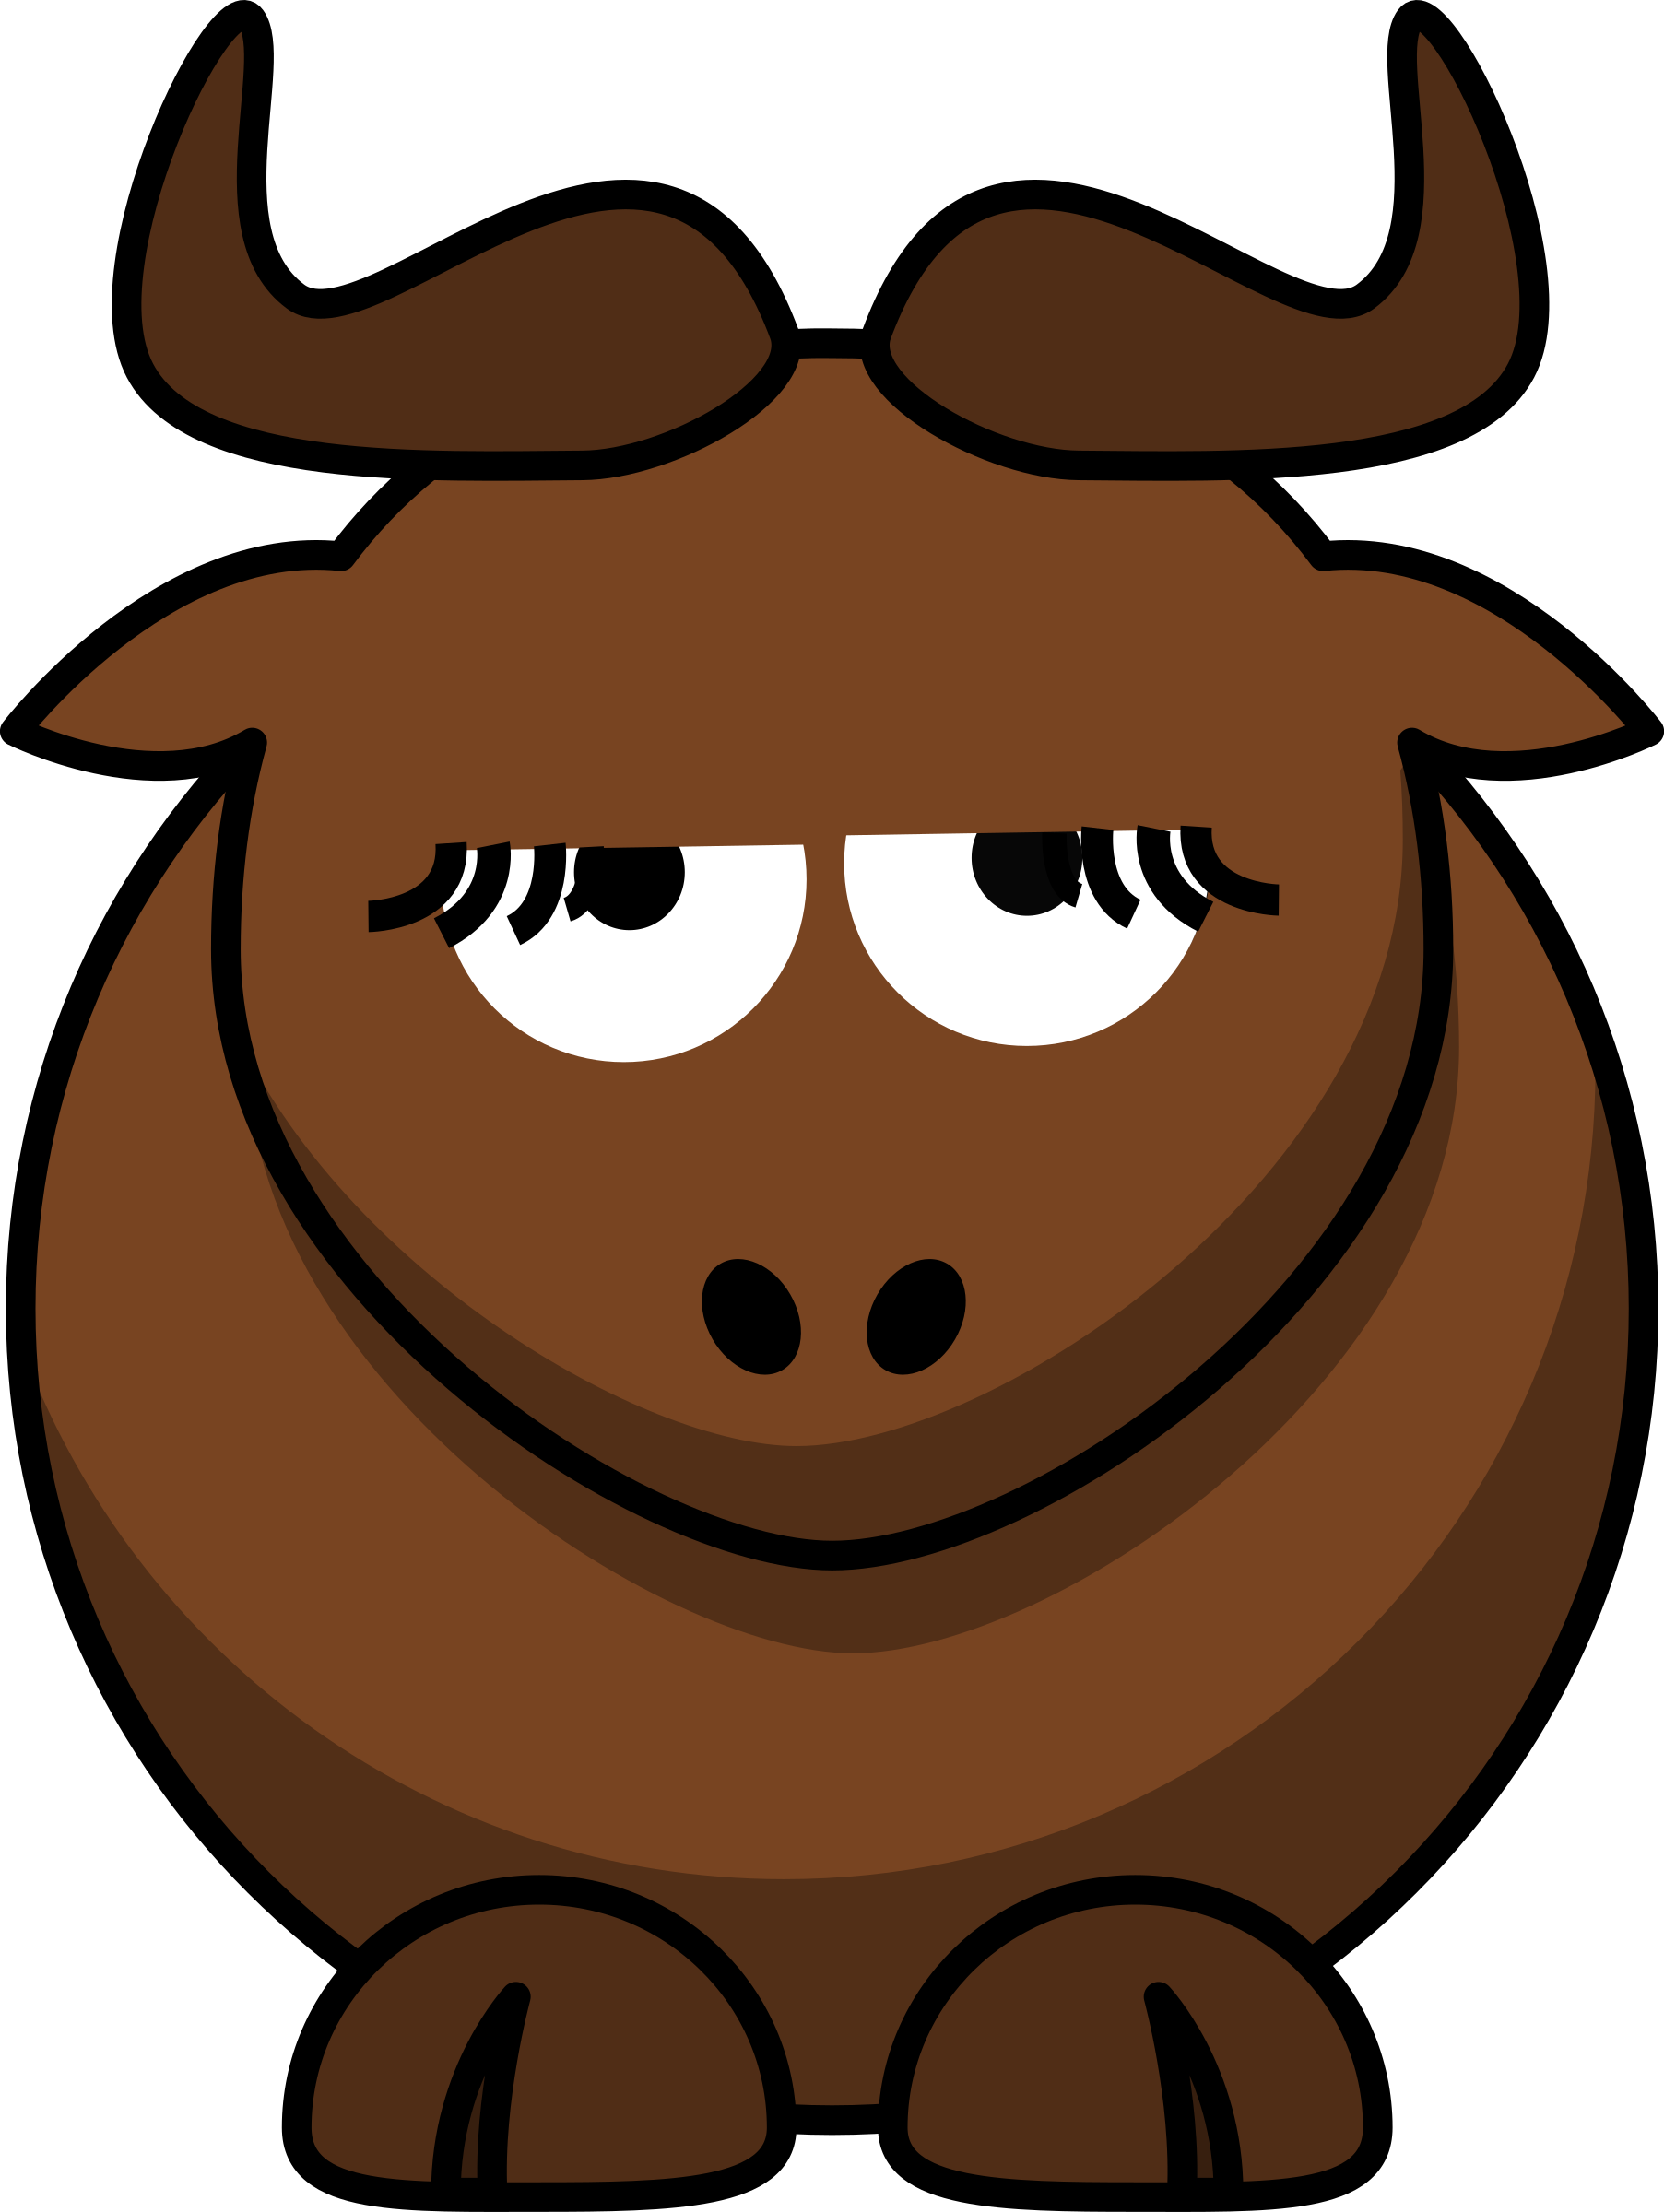 Cartoon Gnu is Disappoint by ephemeralwaves